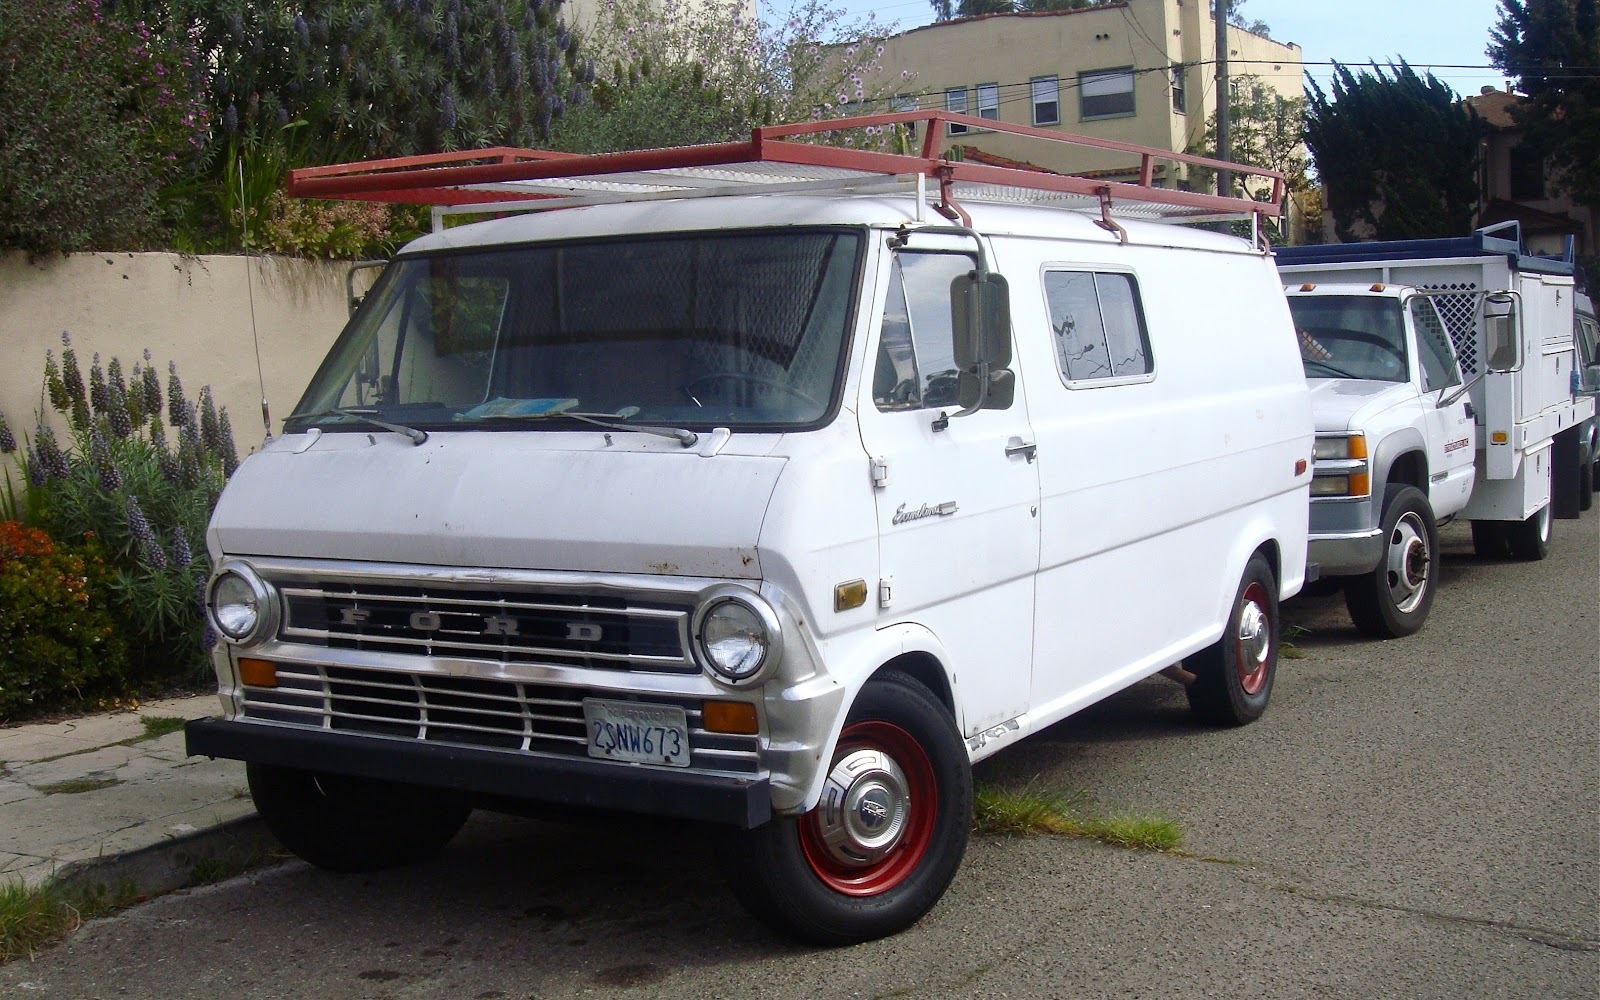 old classic vans for sale in texas | Casepy